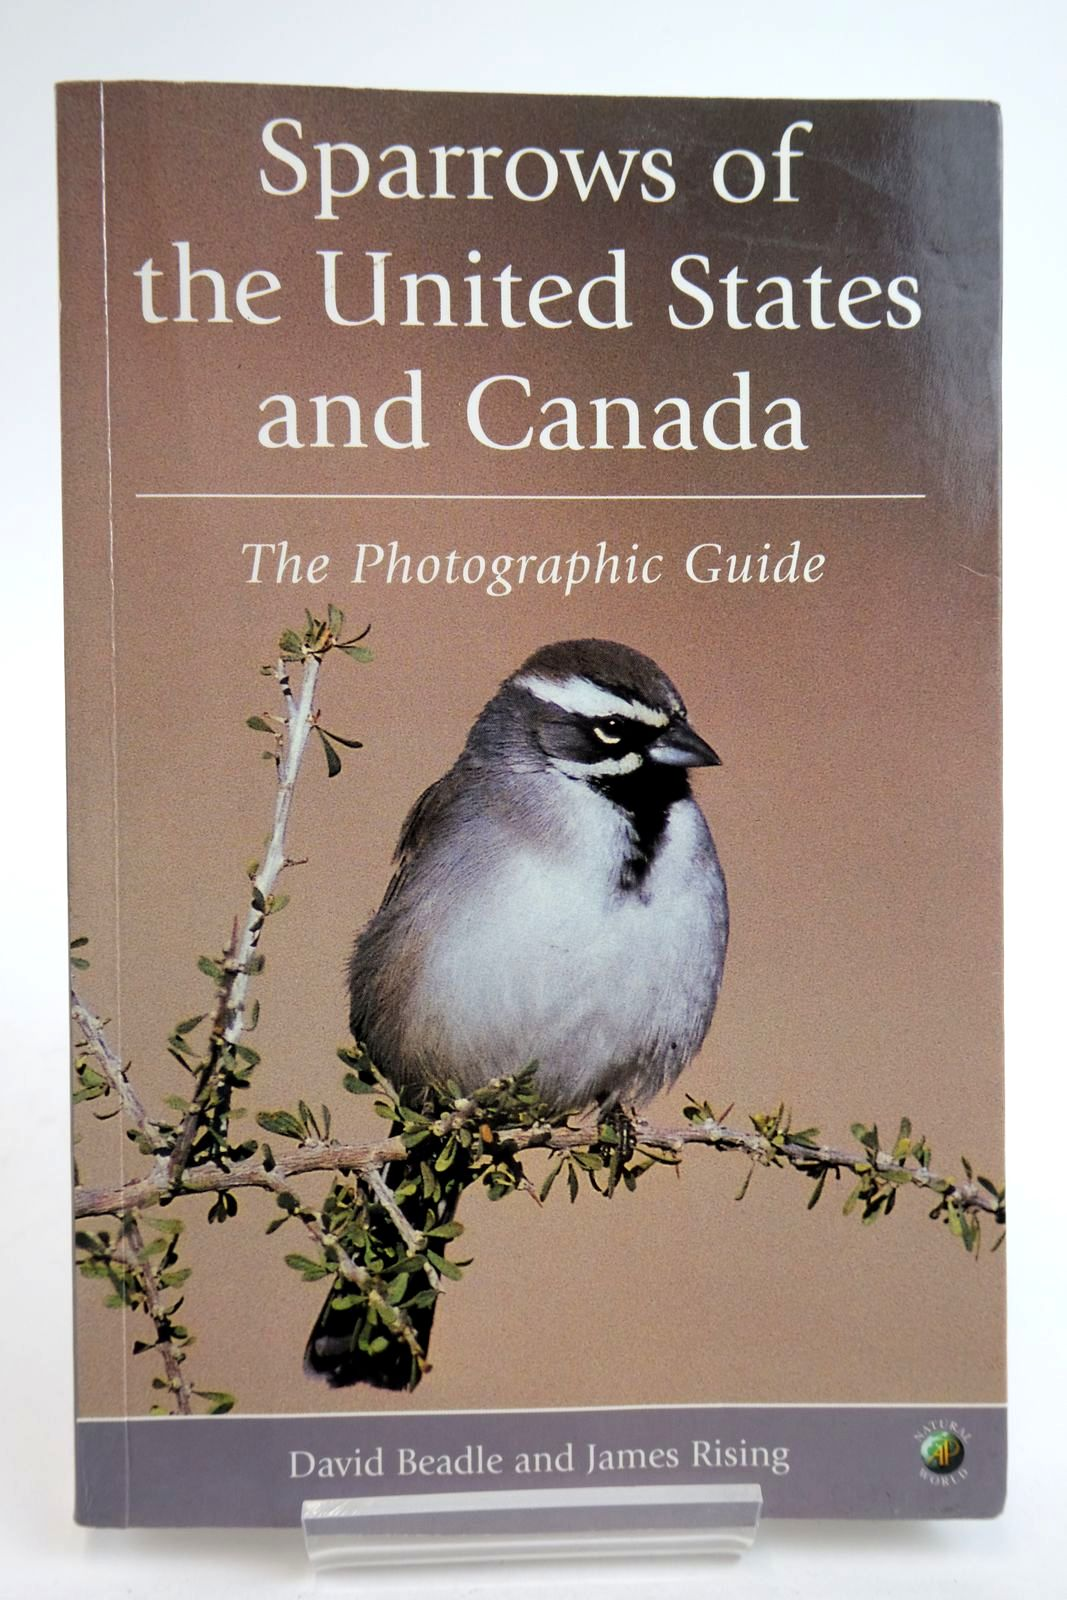 Photo of SPARROWS OF THE UNITED STATES AND CANADA written by Beadle, David Rising, J.D. published by Ap Natural World (STOCK CODE: 2135319)  for sale by Stella & Rose's Books